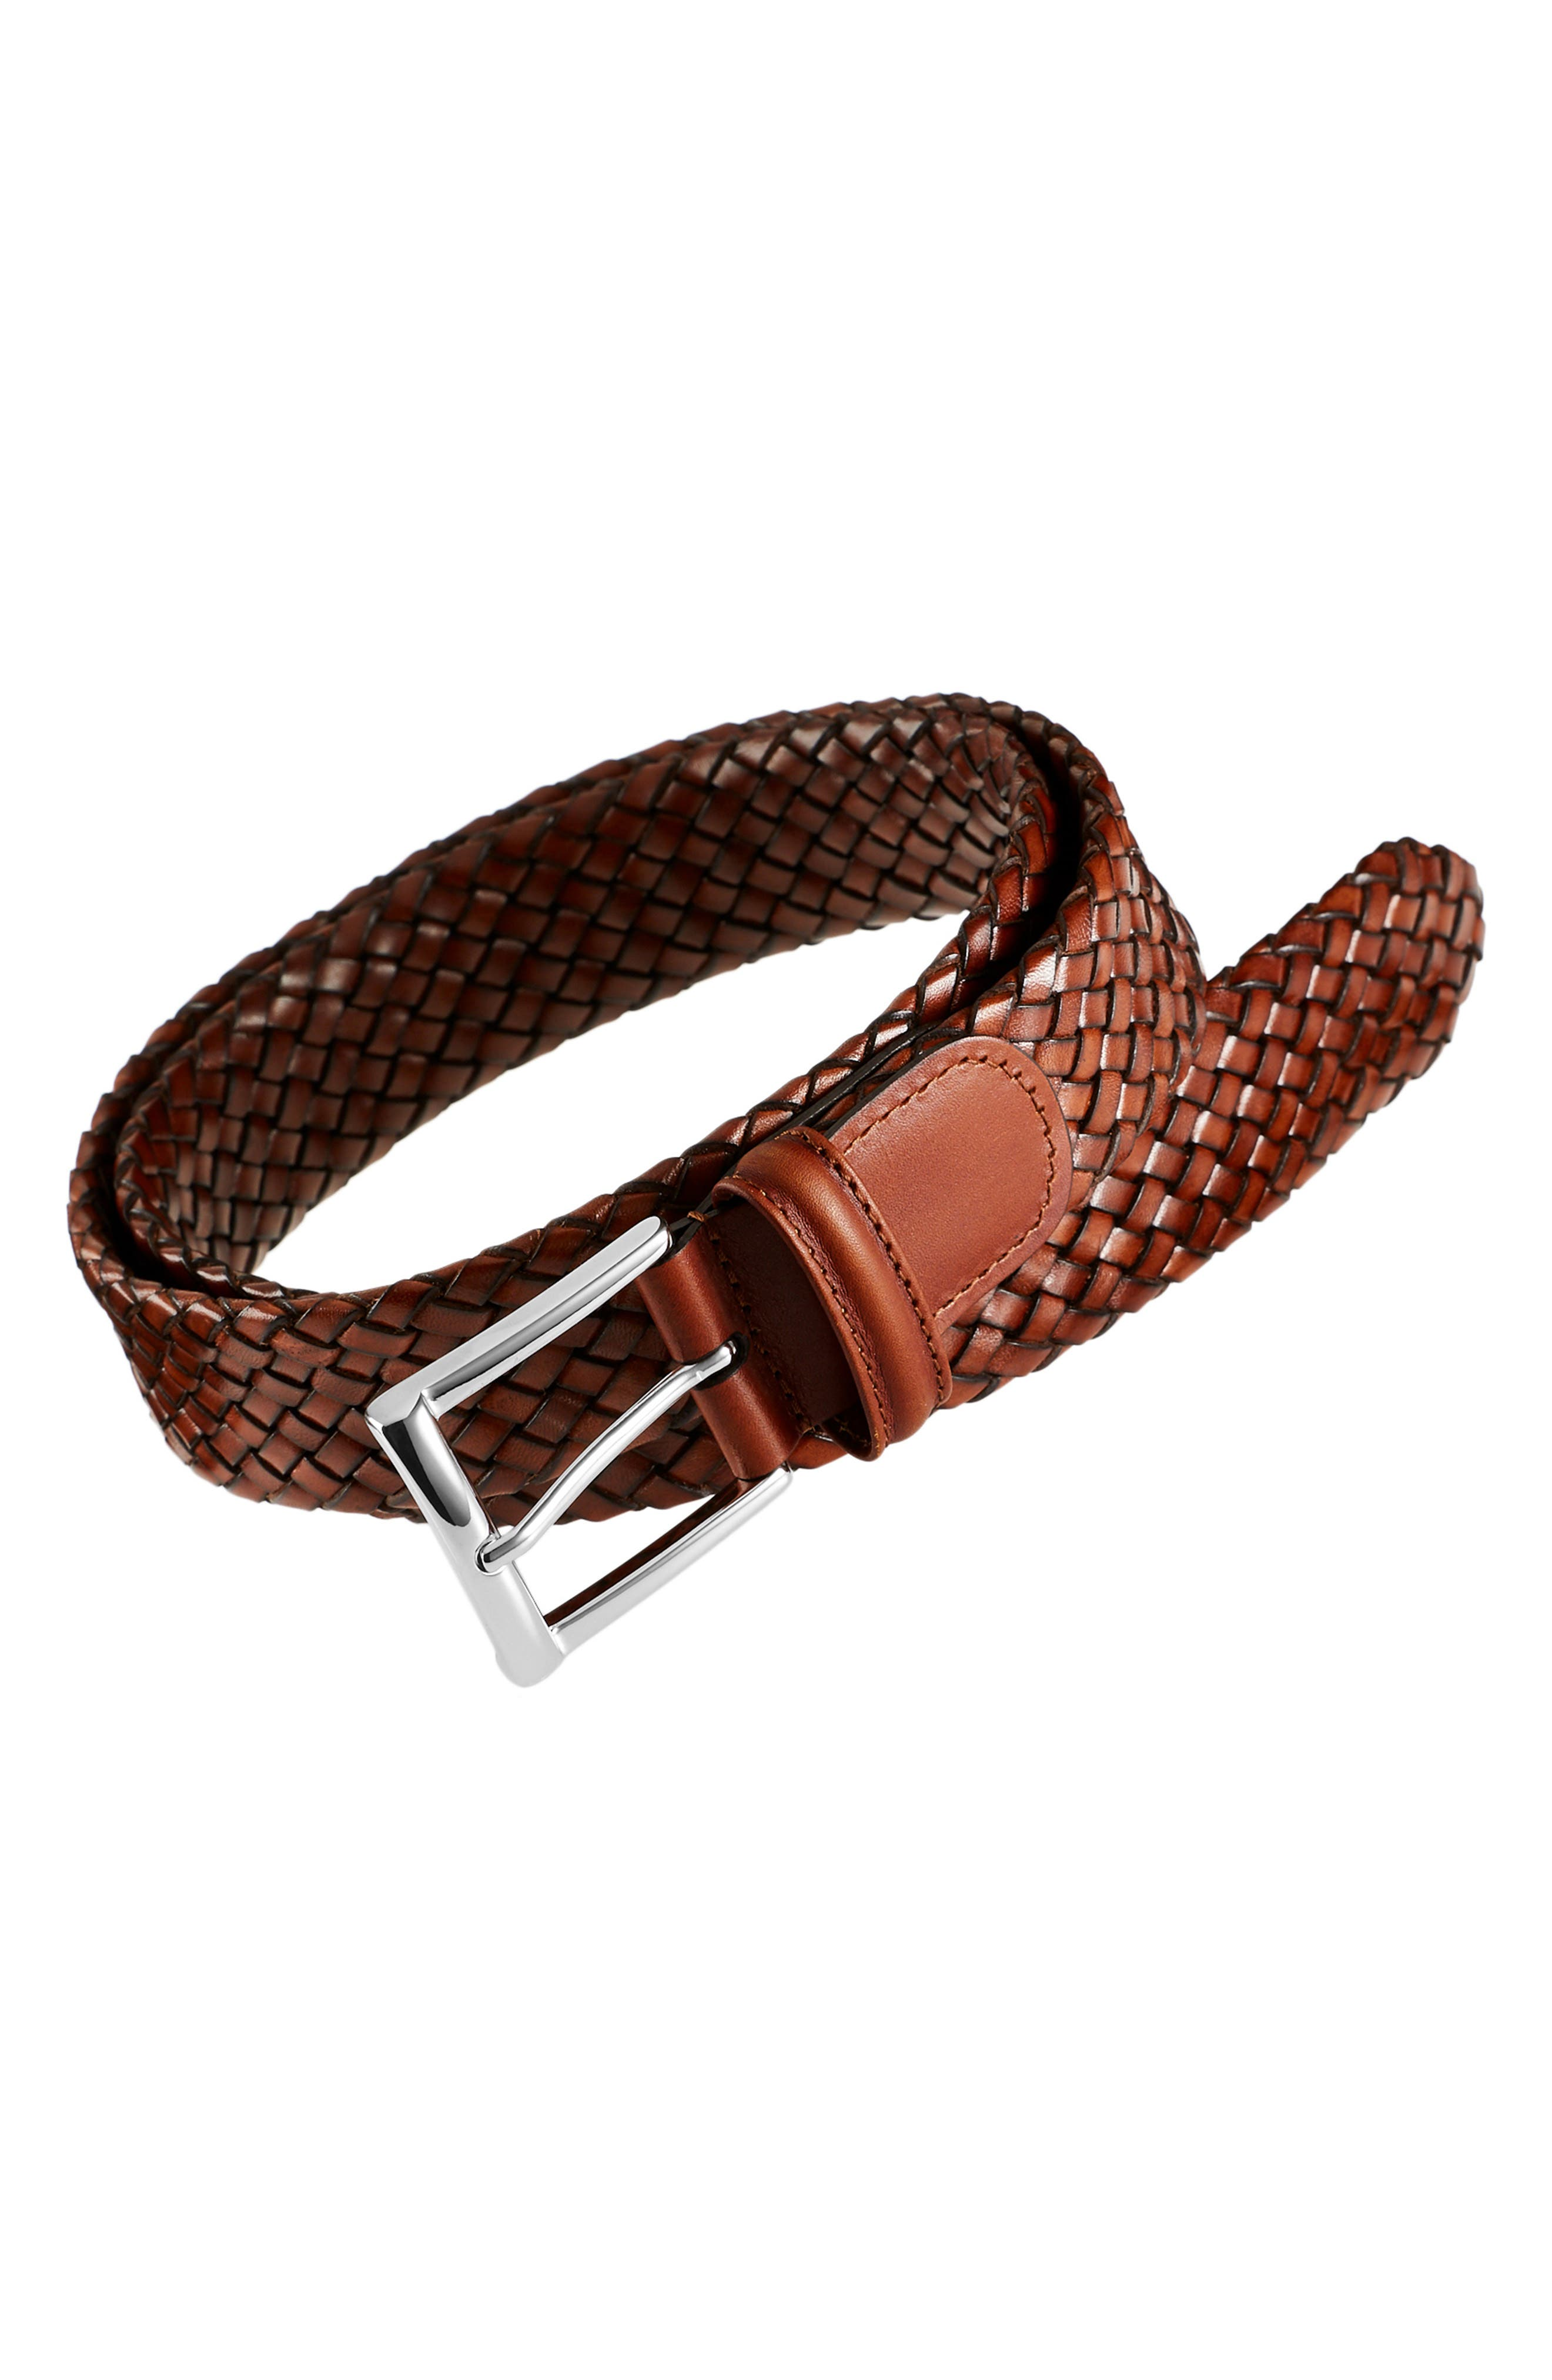 ANDERSONS Woven Leather Belt in Mid Brown